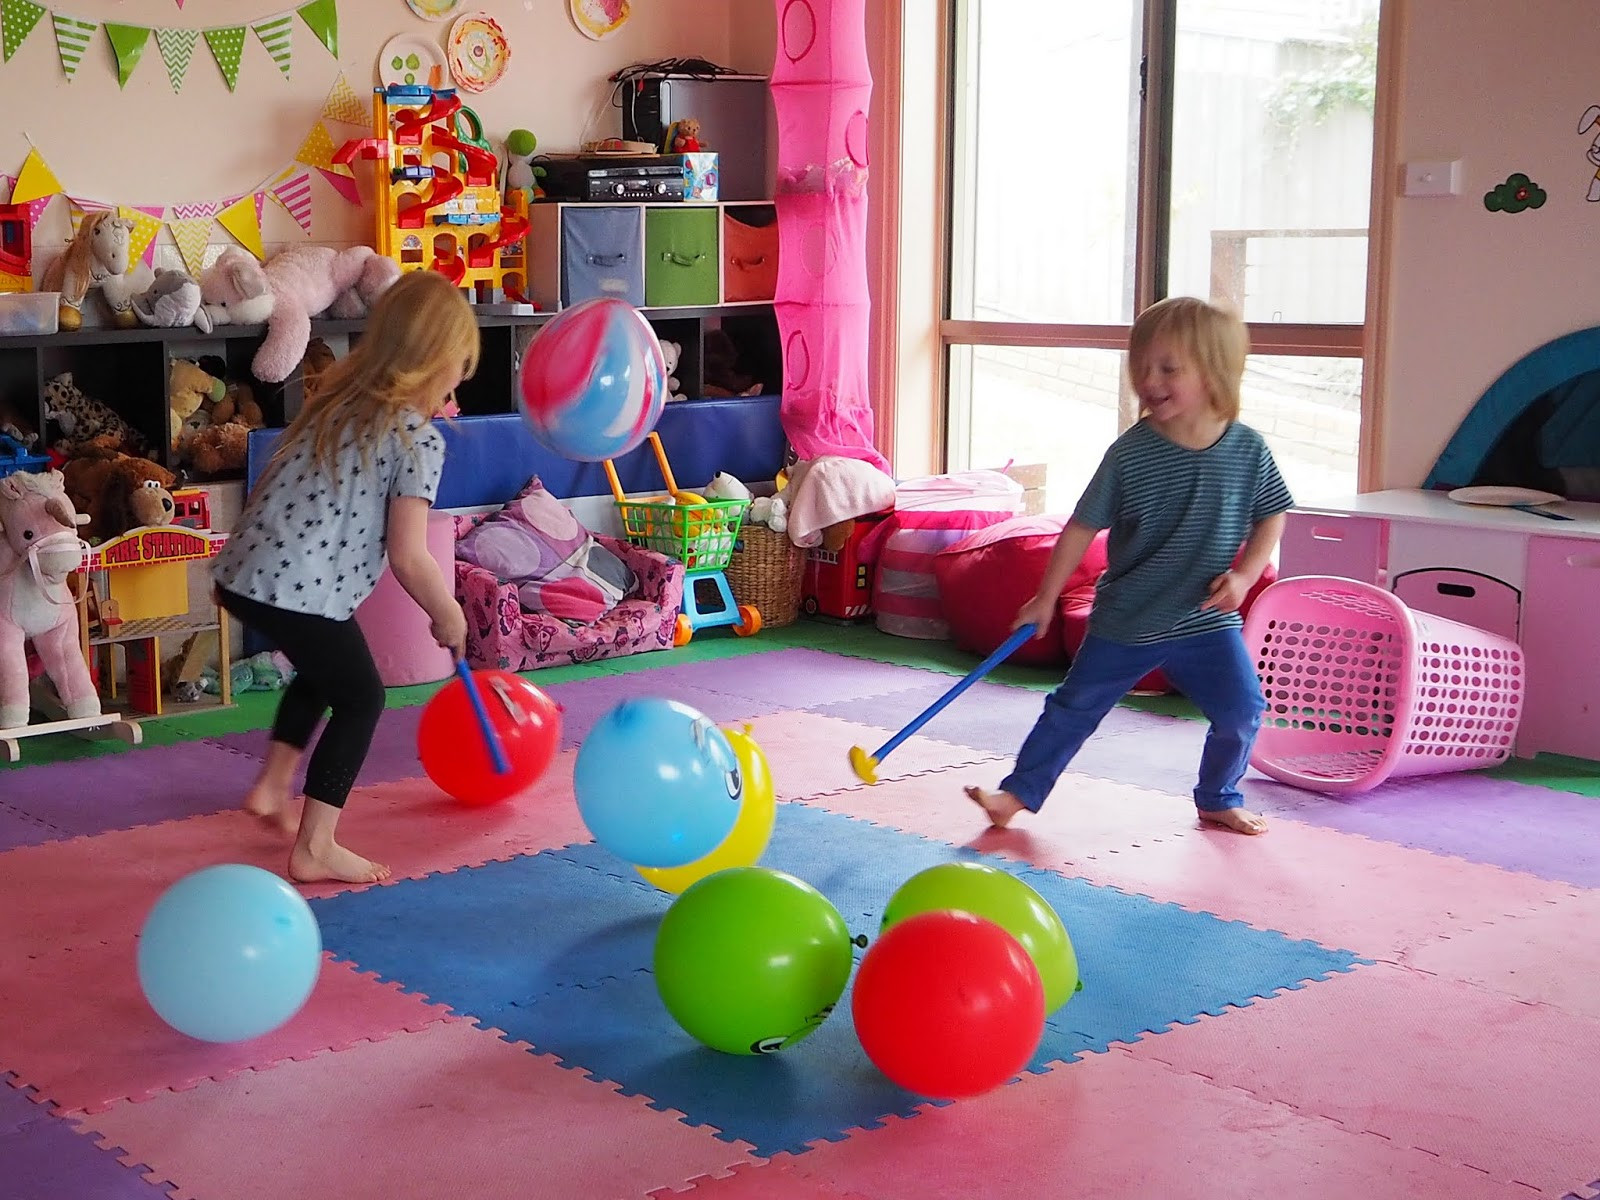 Best ideas about Games For Birthday Party At Home . Save or Pin Learn with Play at Home 5 fun indoor balloon party games Now.